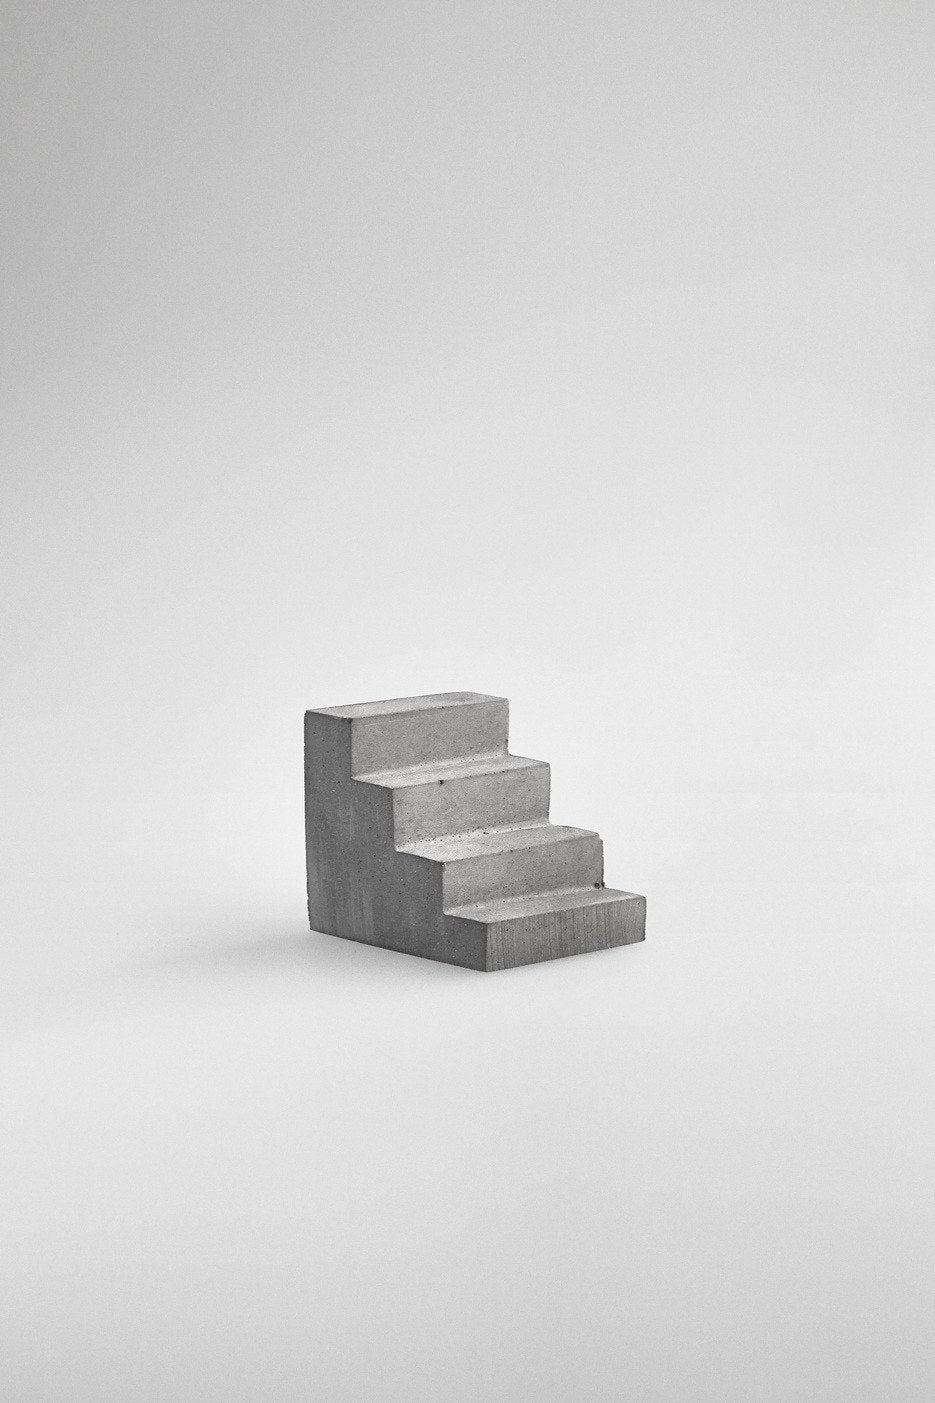 Studiokyss - Concrete Staircase Paperweight